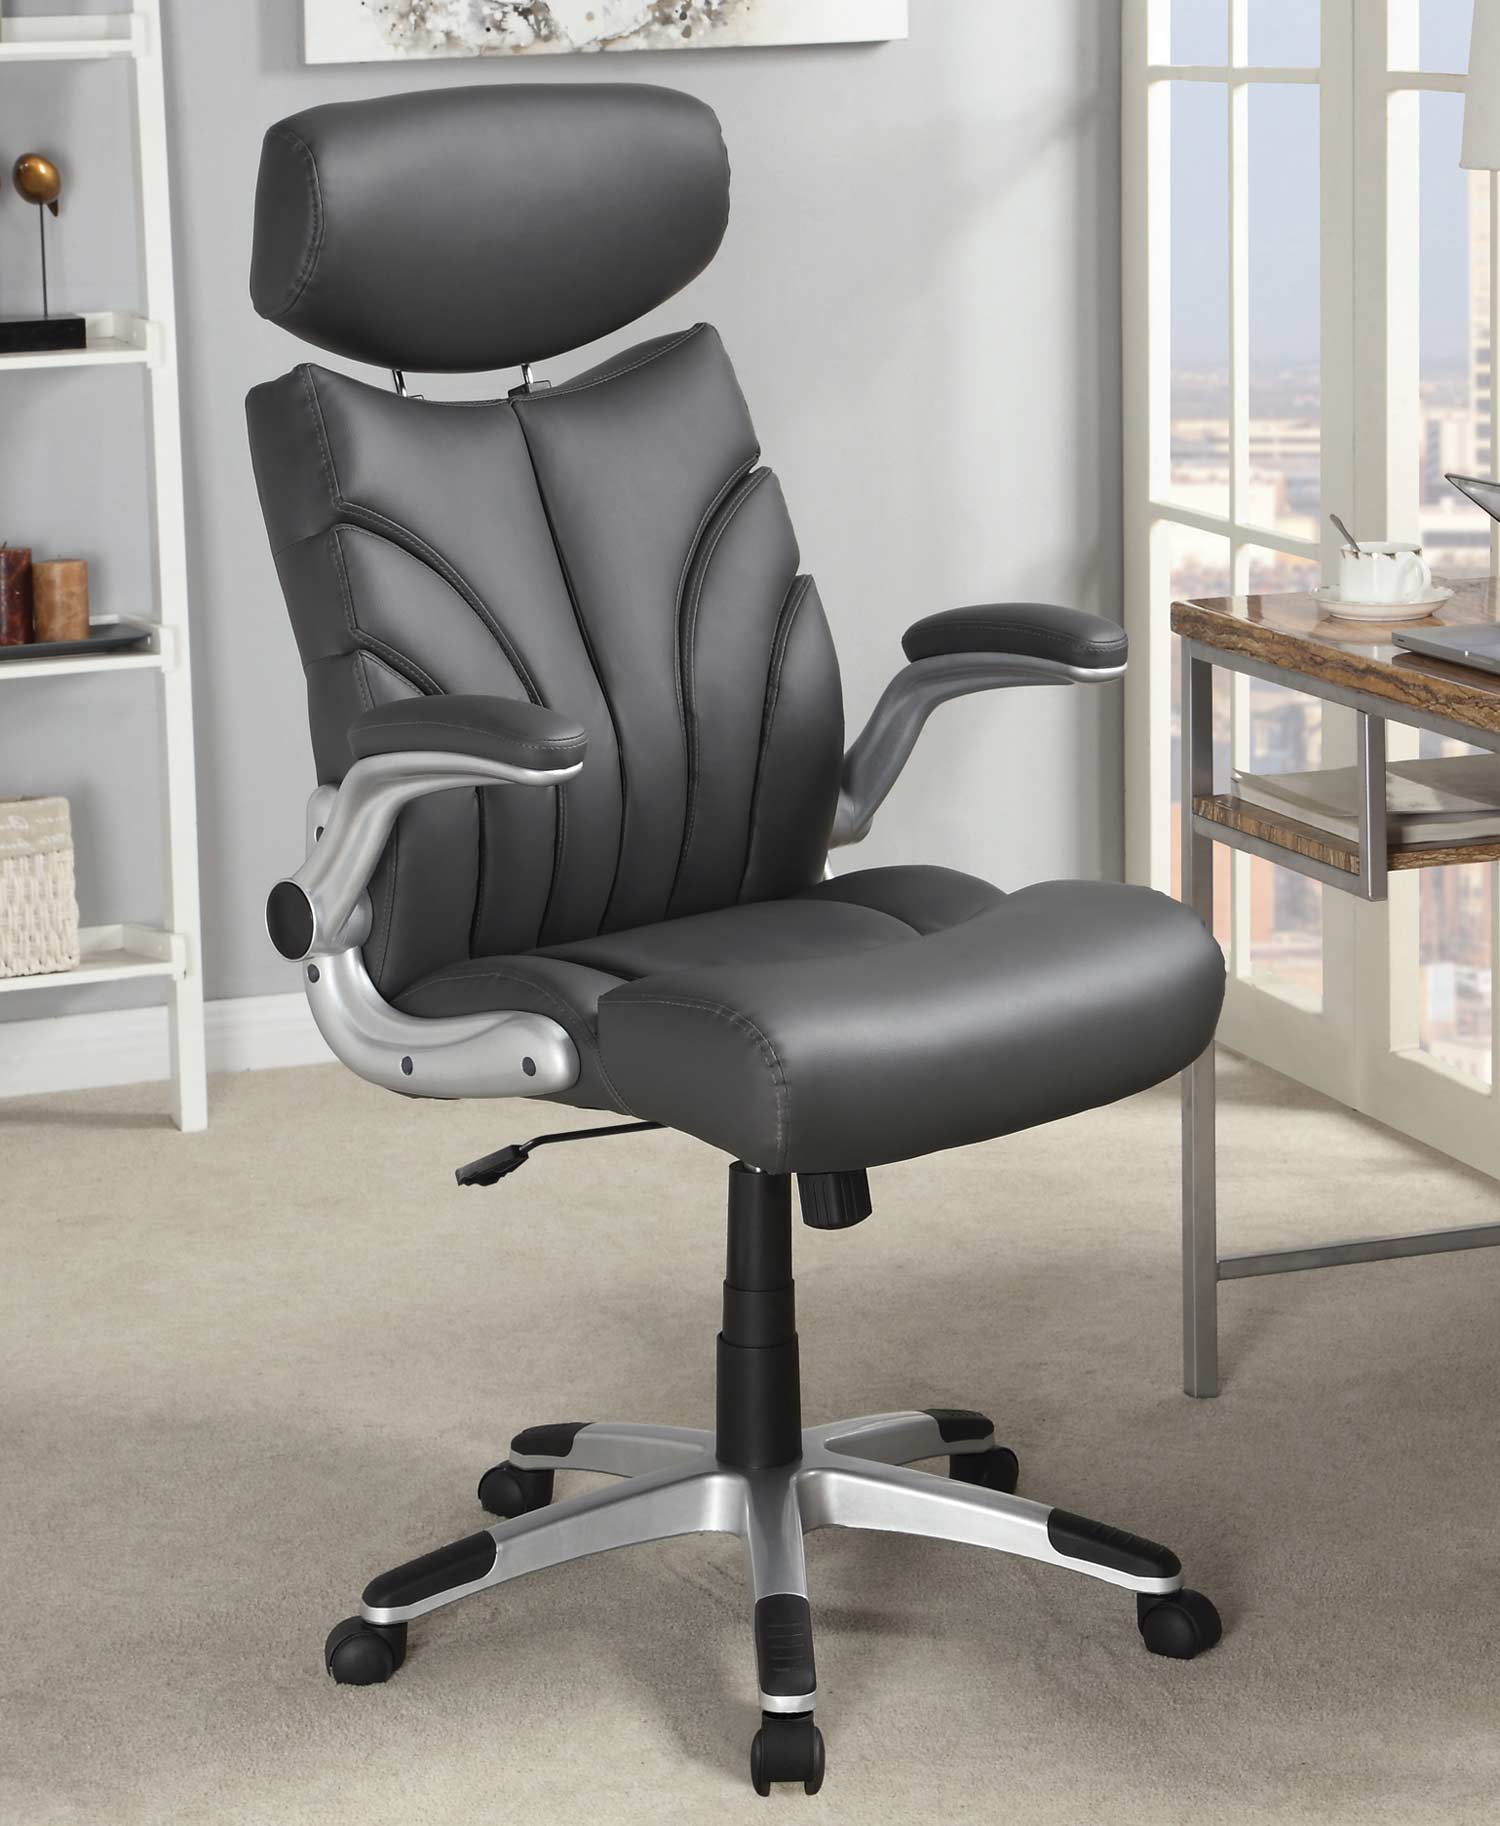 Coaster 800164 Office Chair - Grey